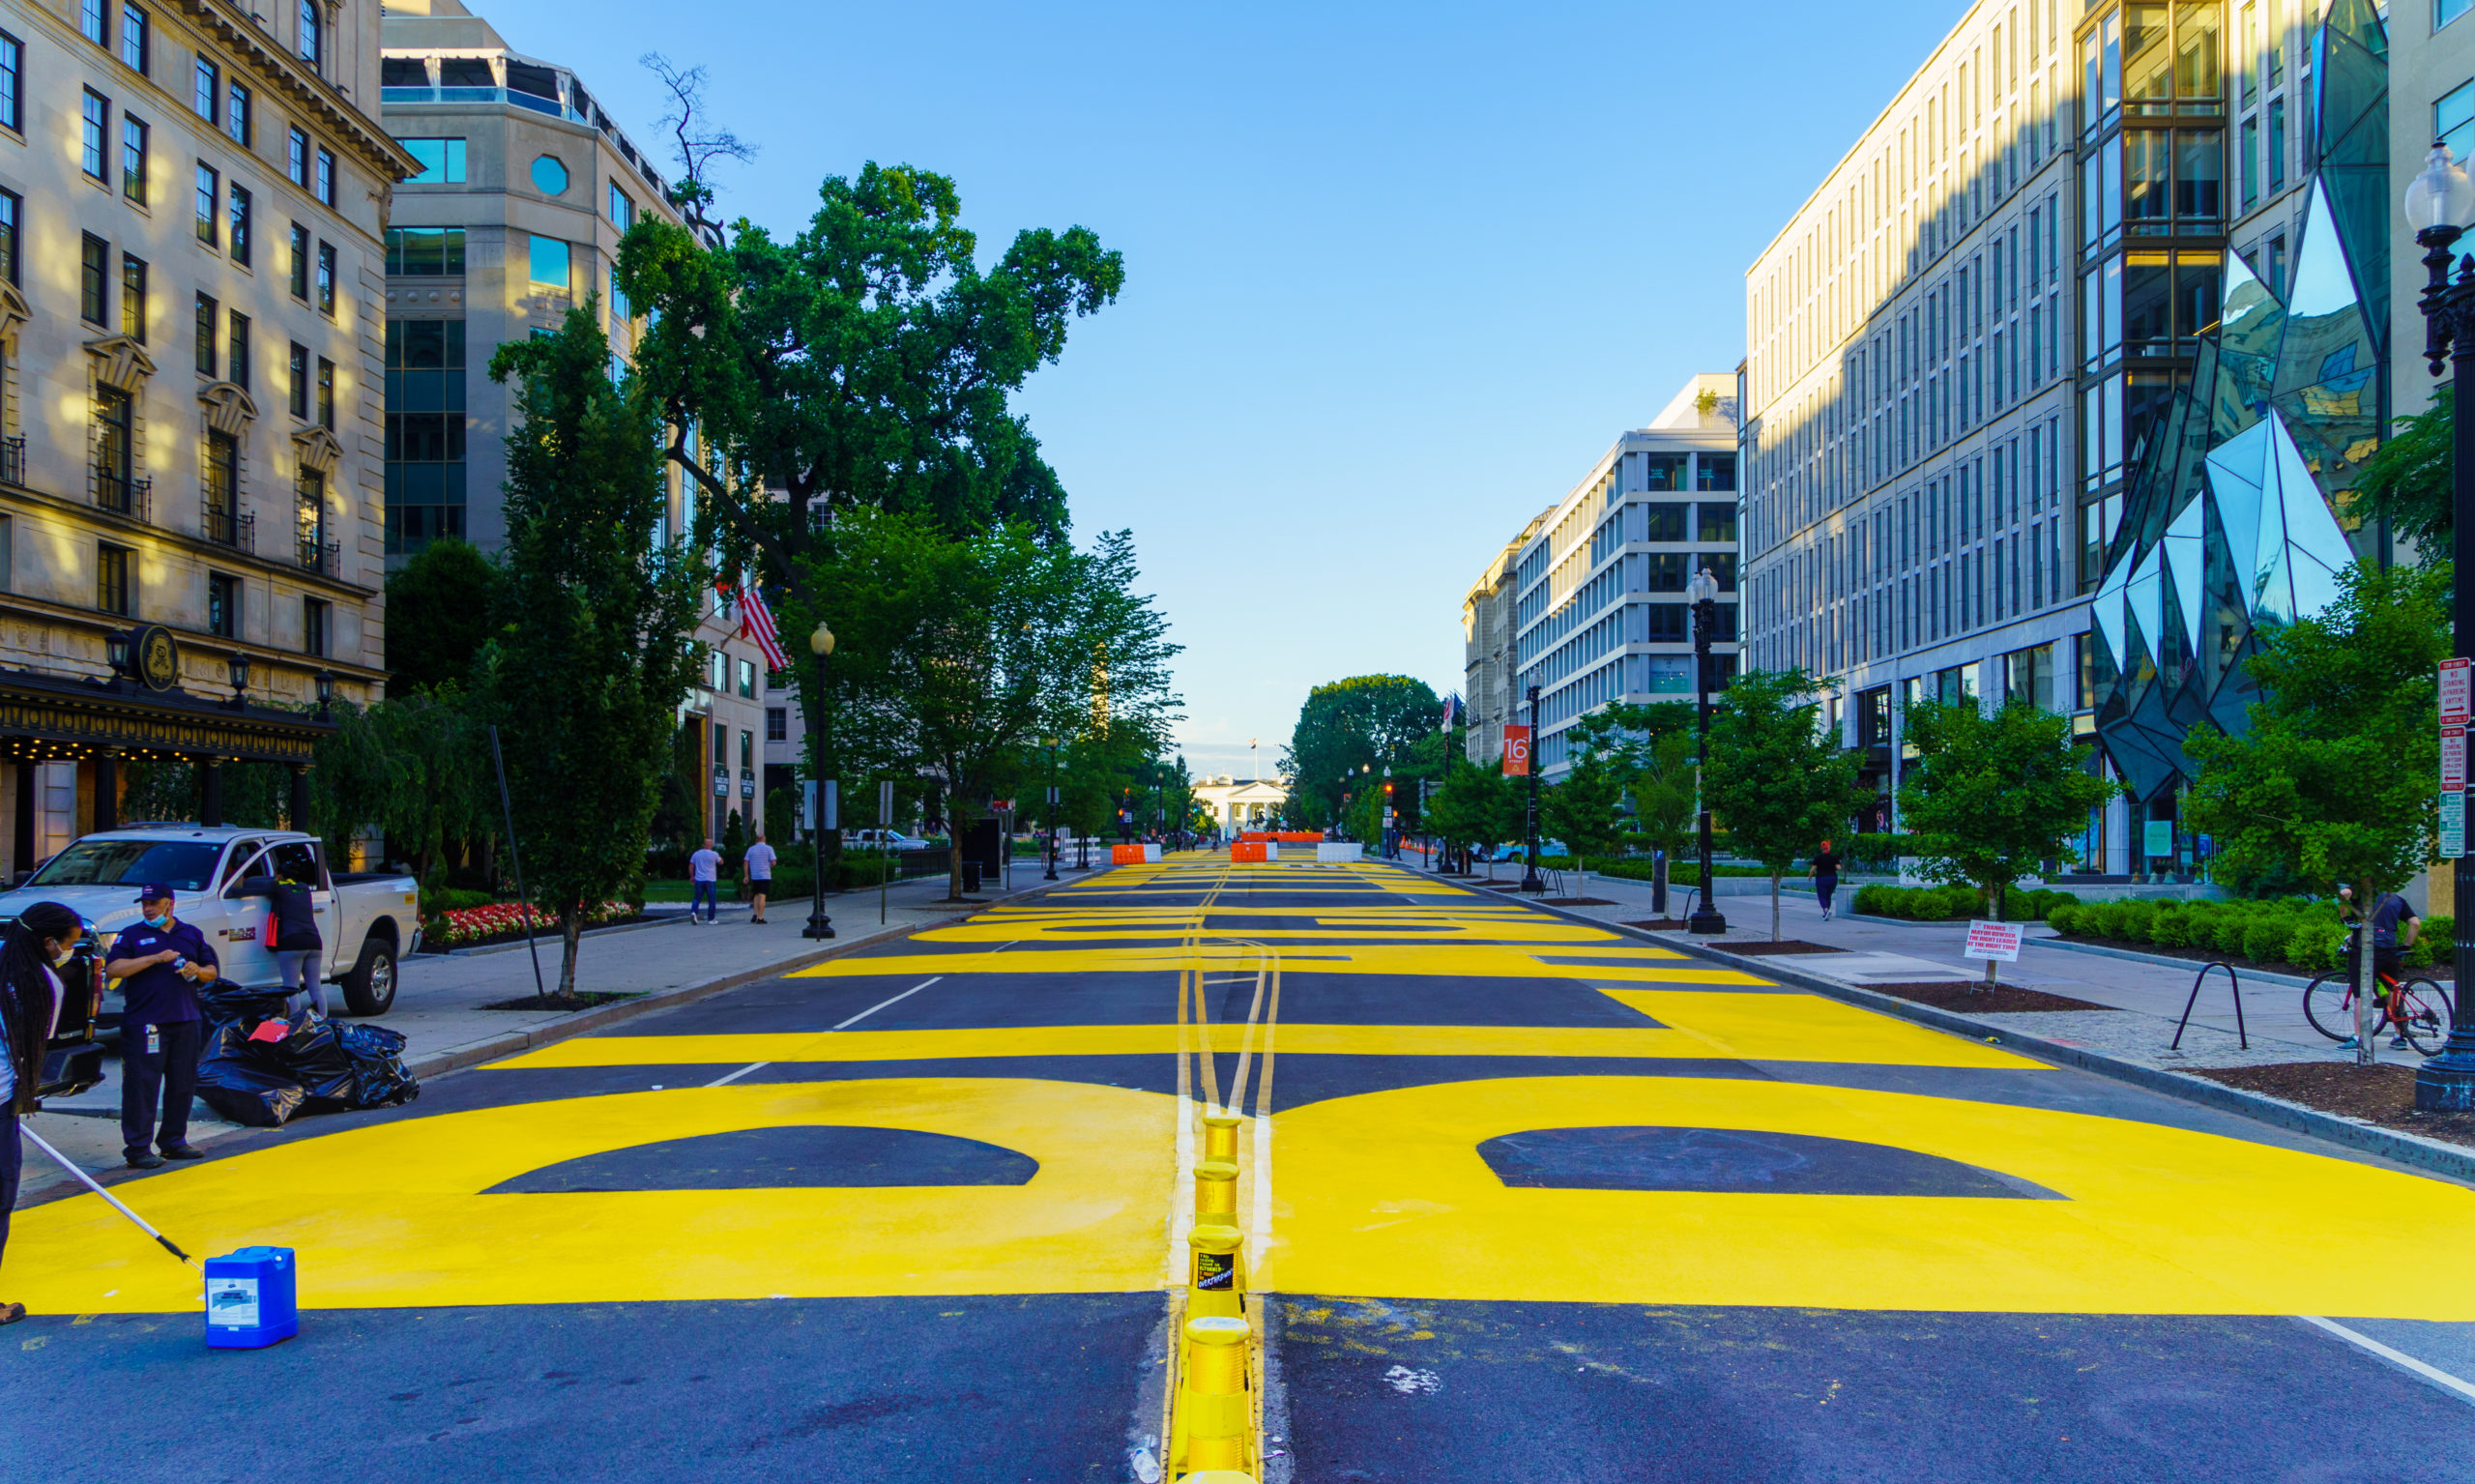 How to Paint Street Murals: Tips from DC